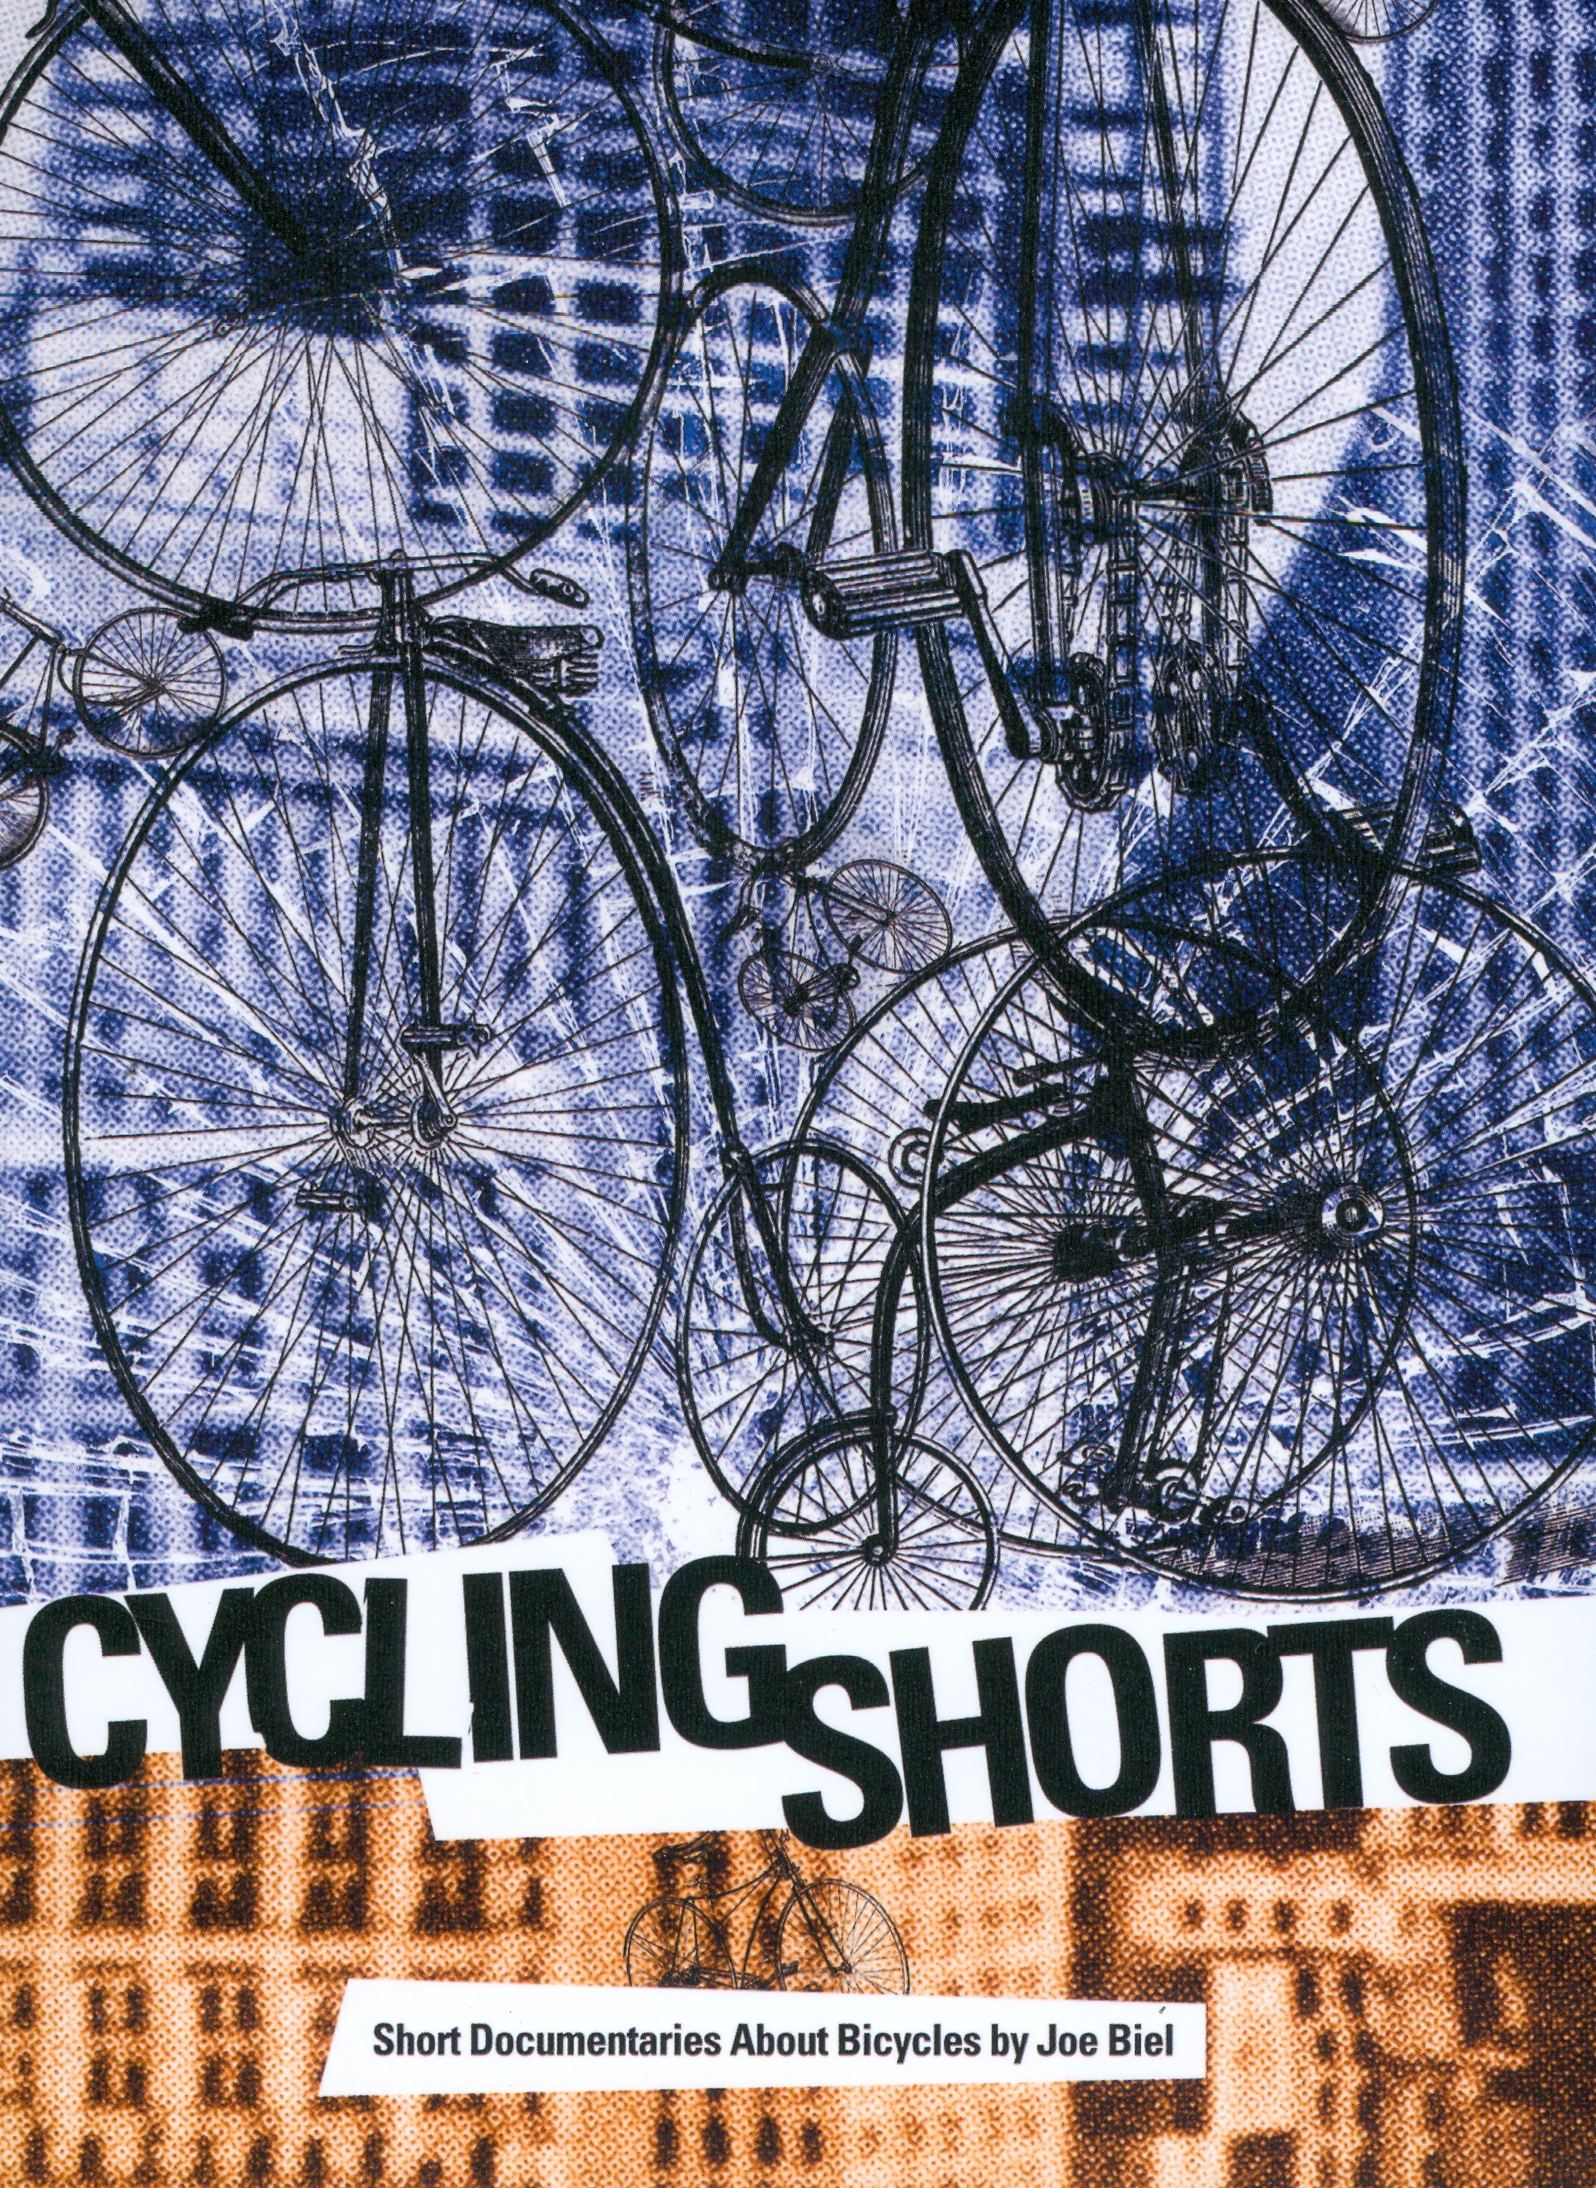 Joe Biel: Cycling Shorts - Short Documentaries About Bicycles